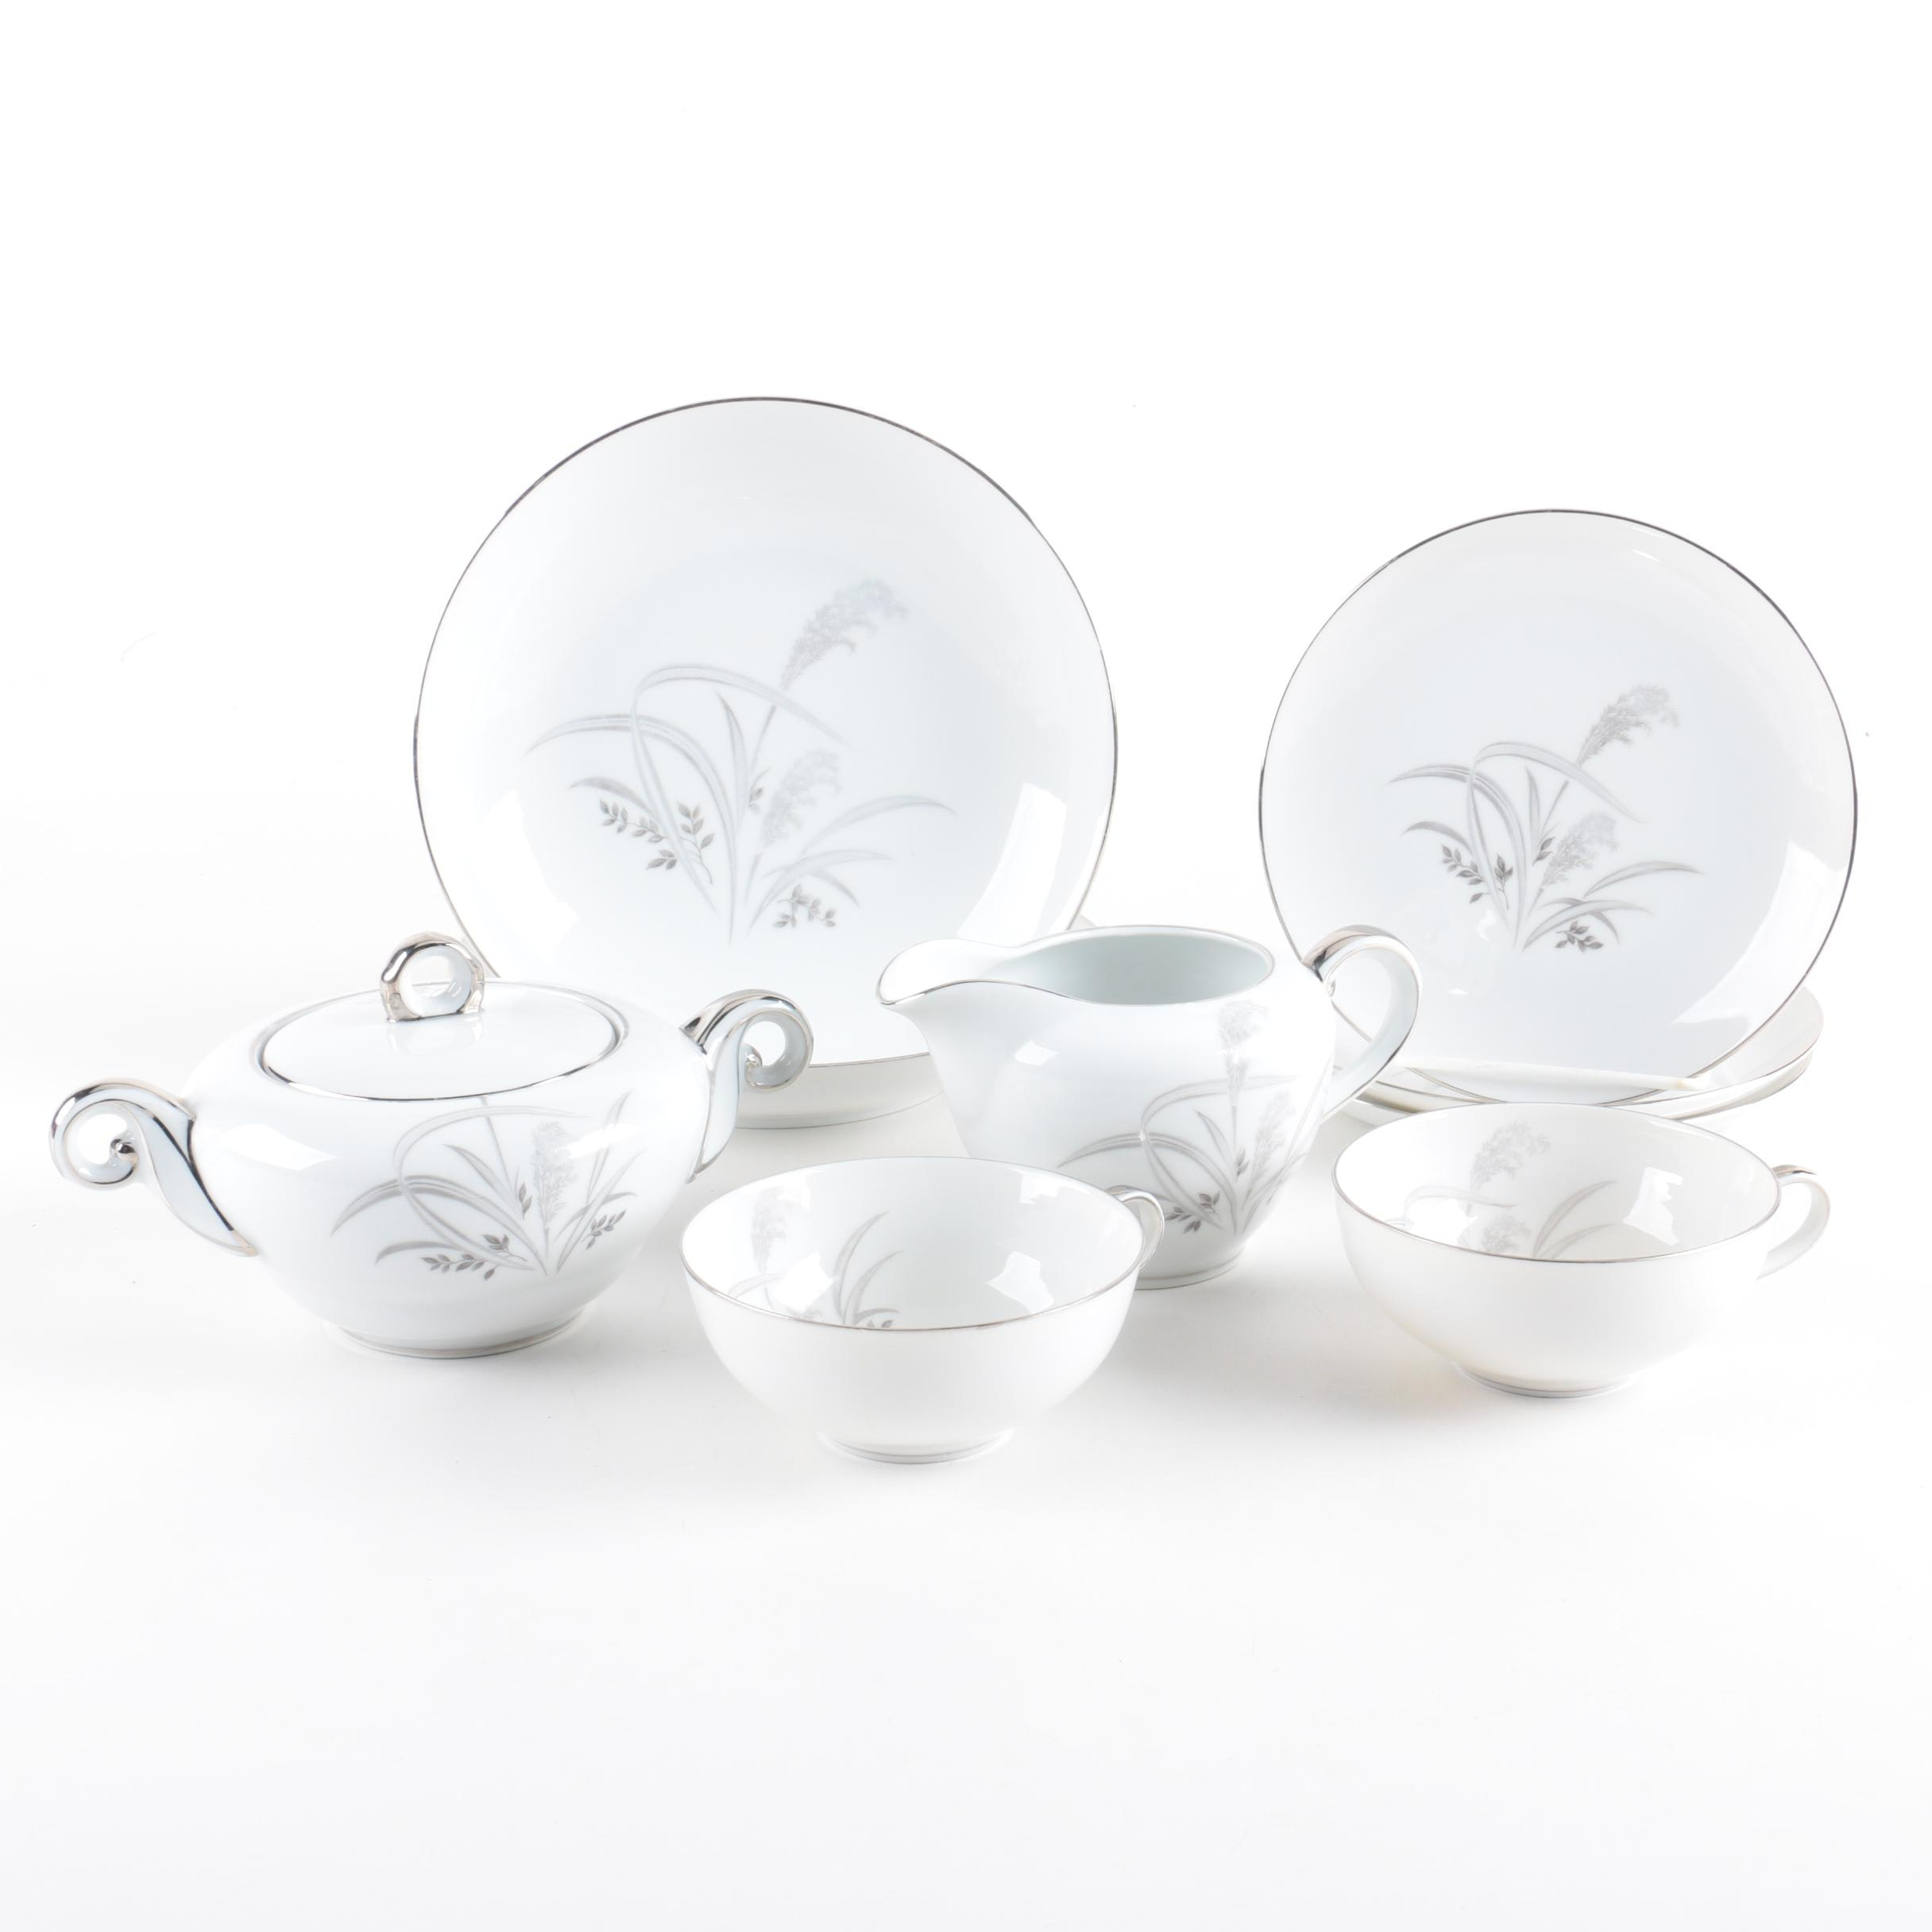 "Wentworth China, ""Silver Wheat"" Tableware"